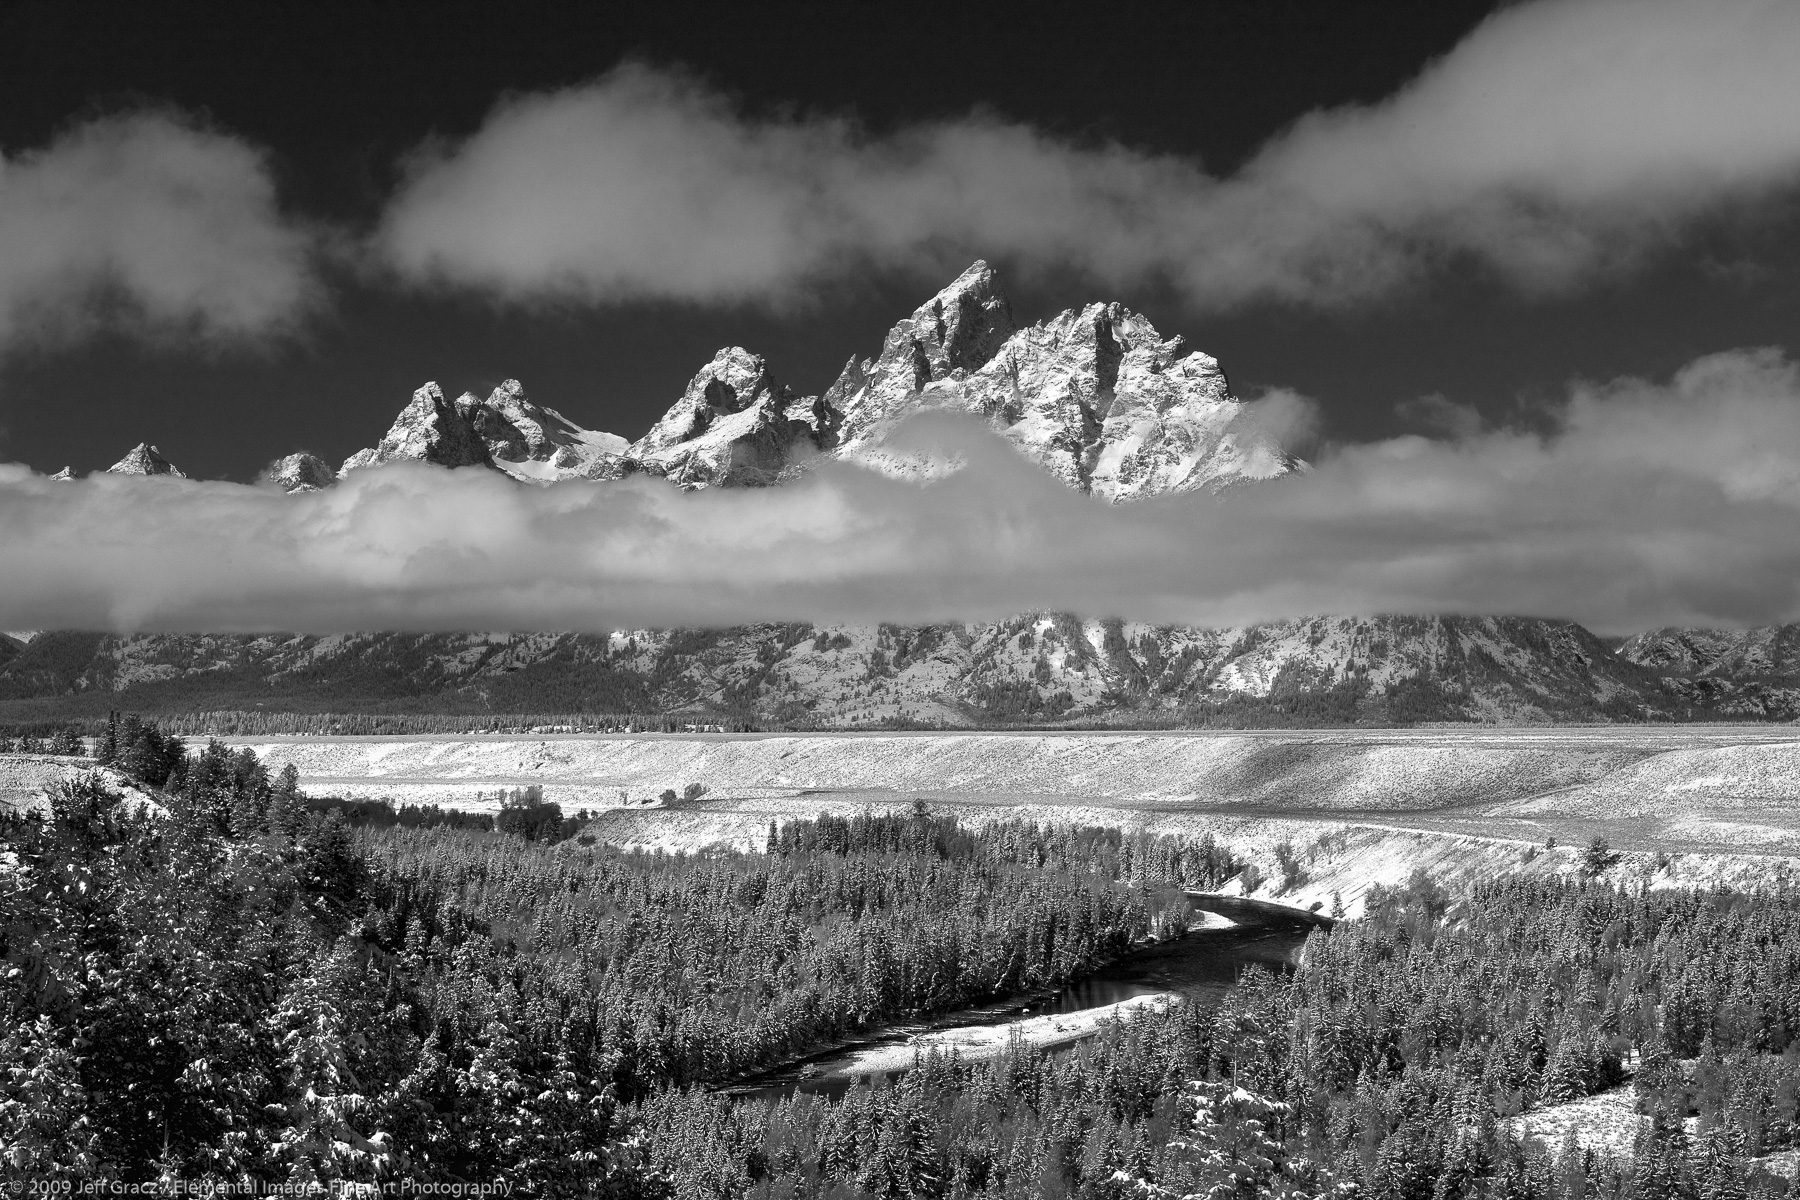 Grand Tetons in early winter   Grand Teton National Park   WY   USA - © © 2009 Jeff Gracz / Elemental Images Fine Art Photography - All Rights Reserved Worldwide